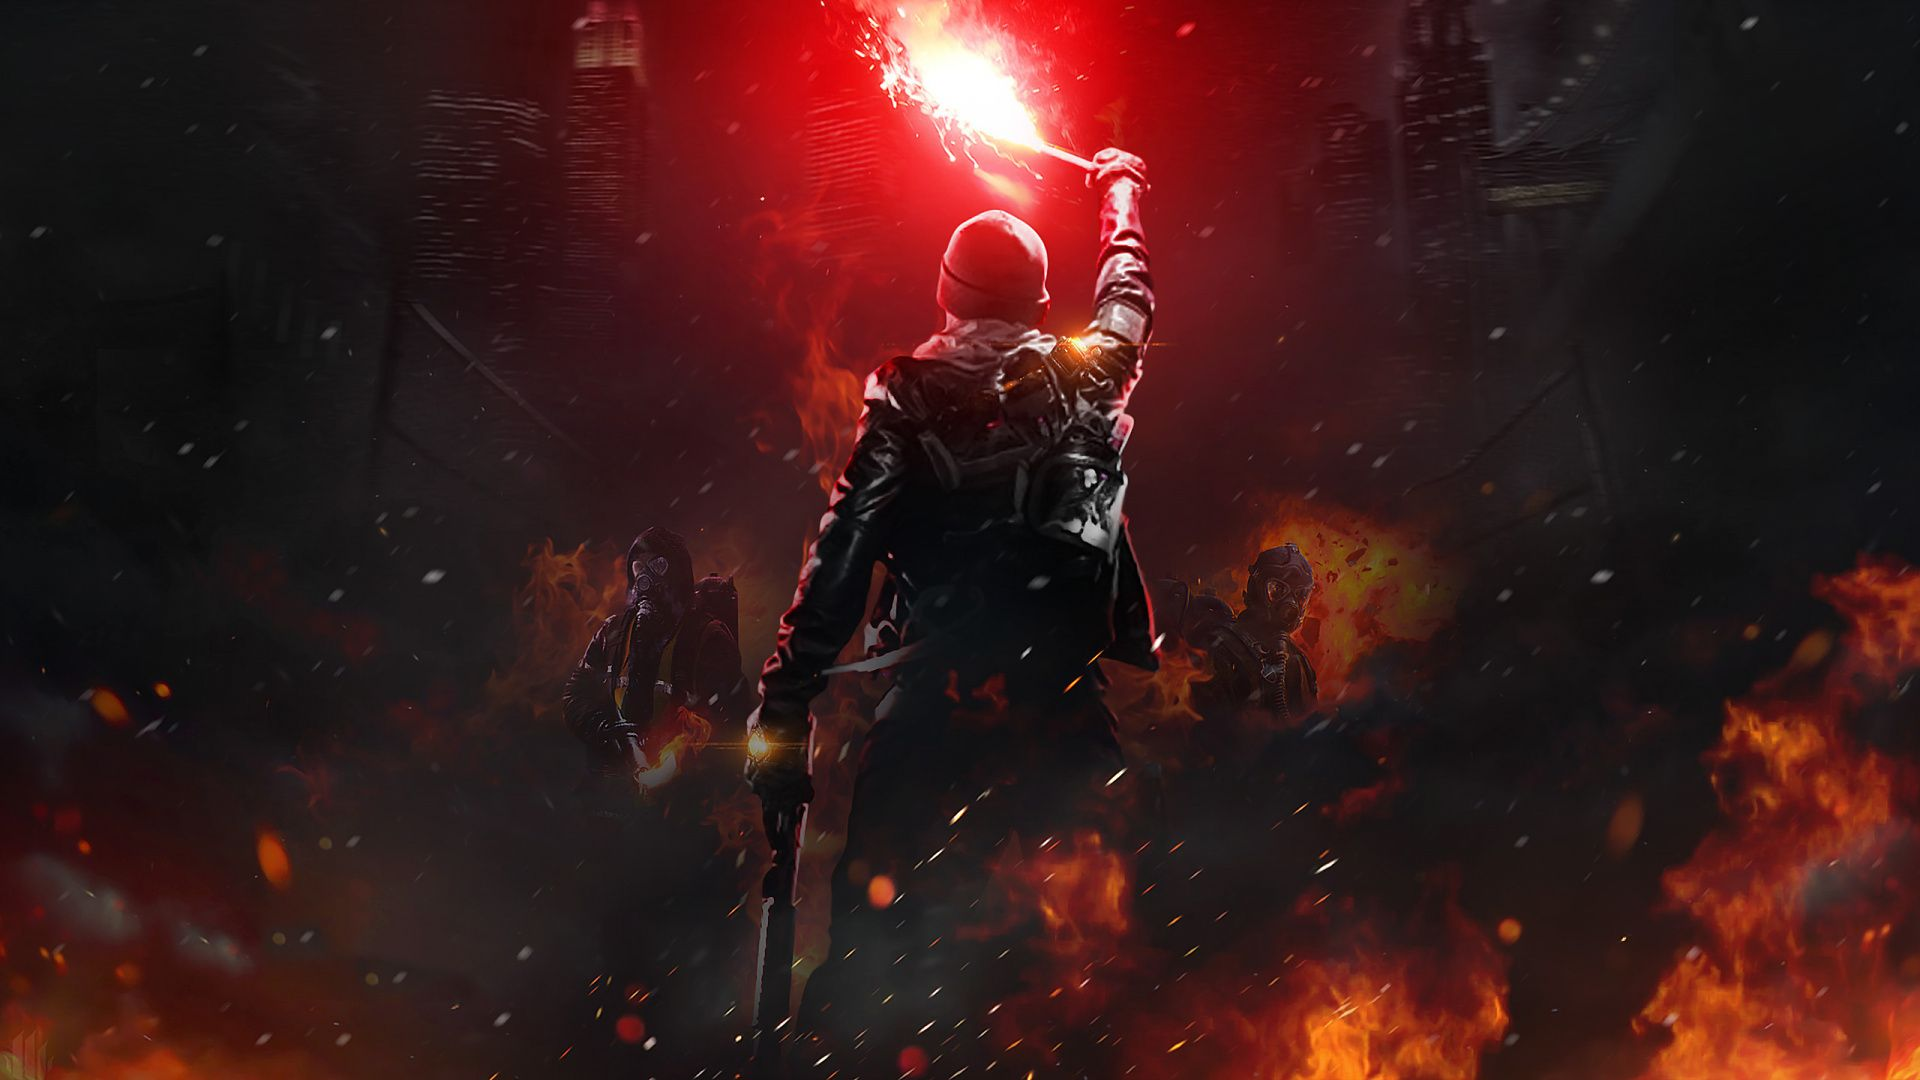 Masked Soldiers Dark Fire Tom Clancy S The Division Online